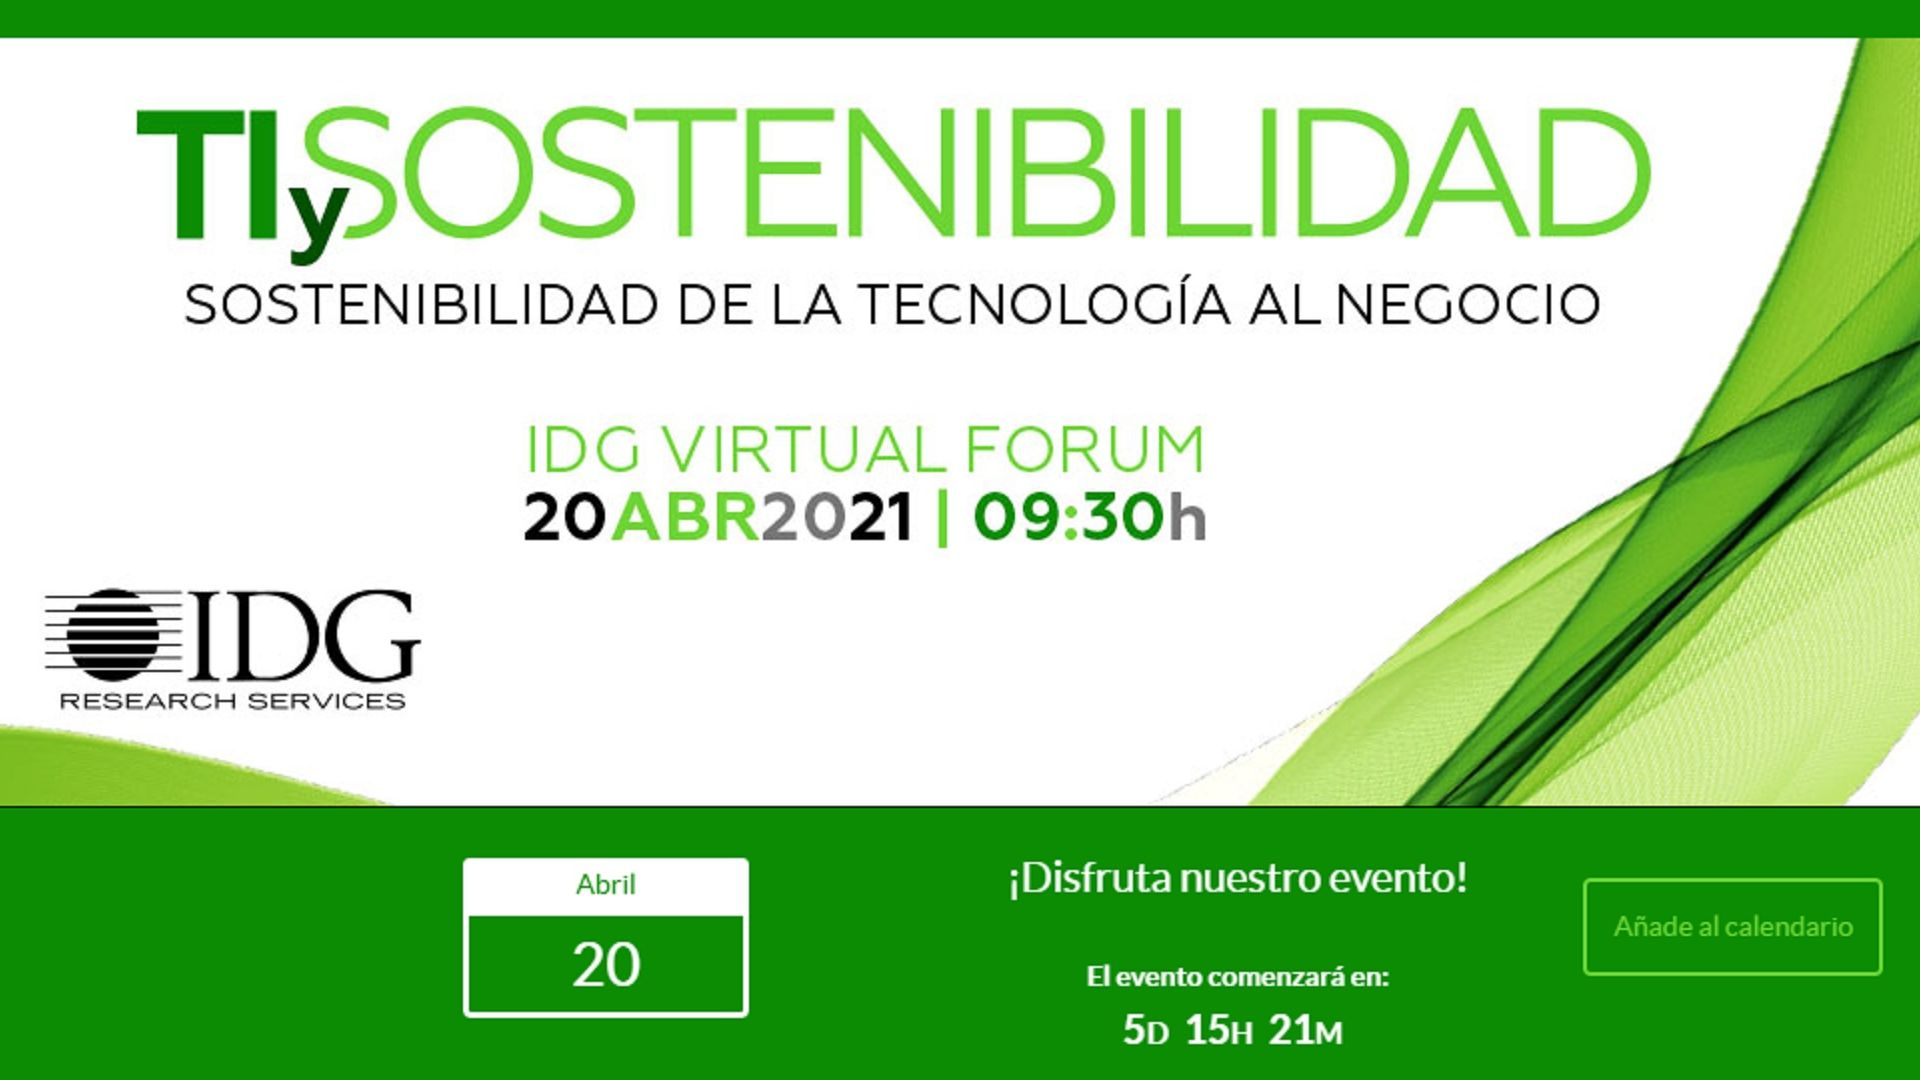 IDG Virtual Forum Sostenibilidad T-Systems